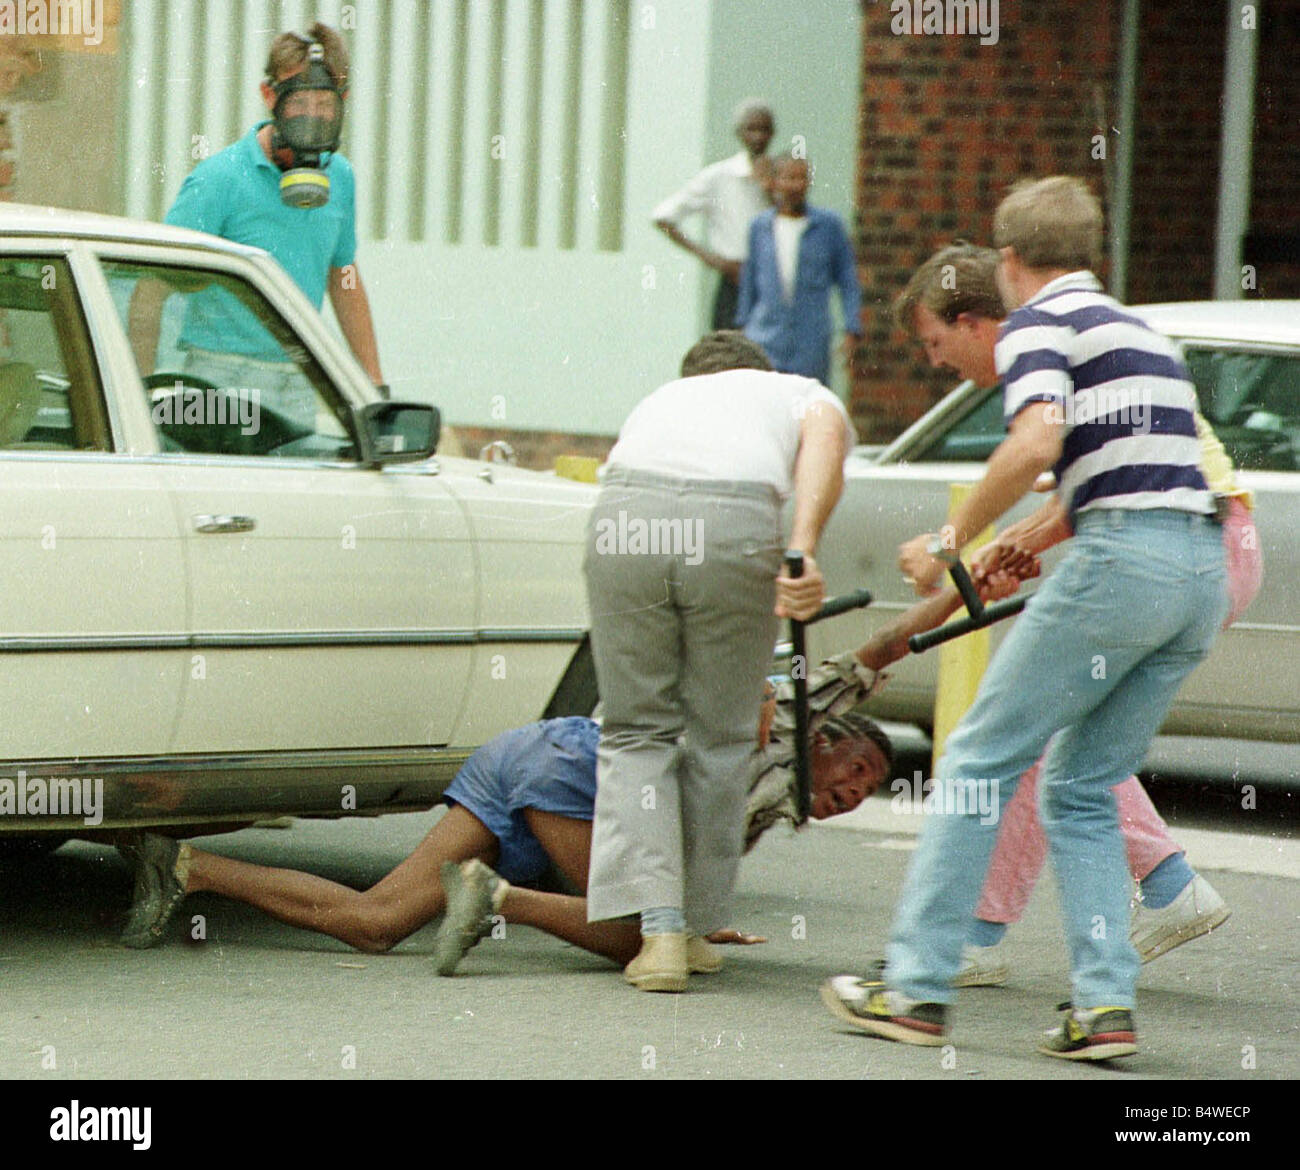 A South African boy is beaten by police in Kimberley South Africa during the rebel cricket tour in South Africa - Stock Image